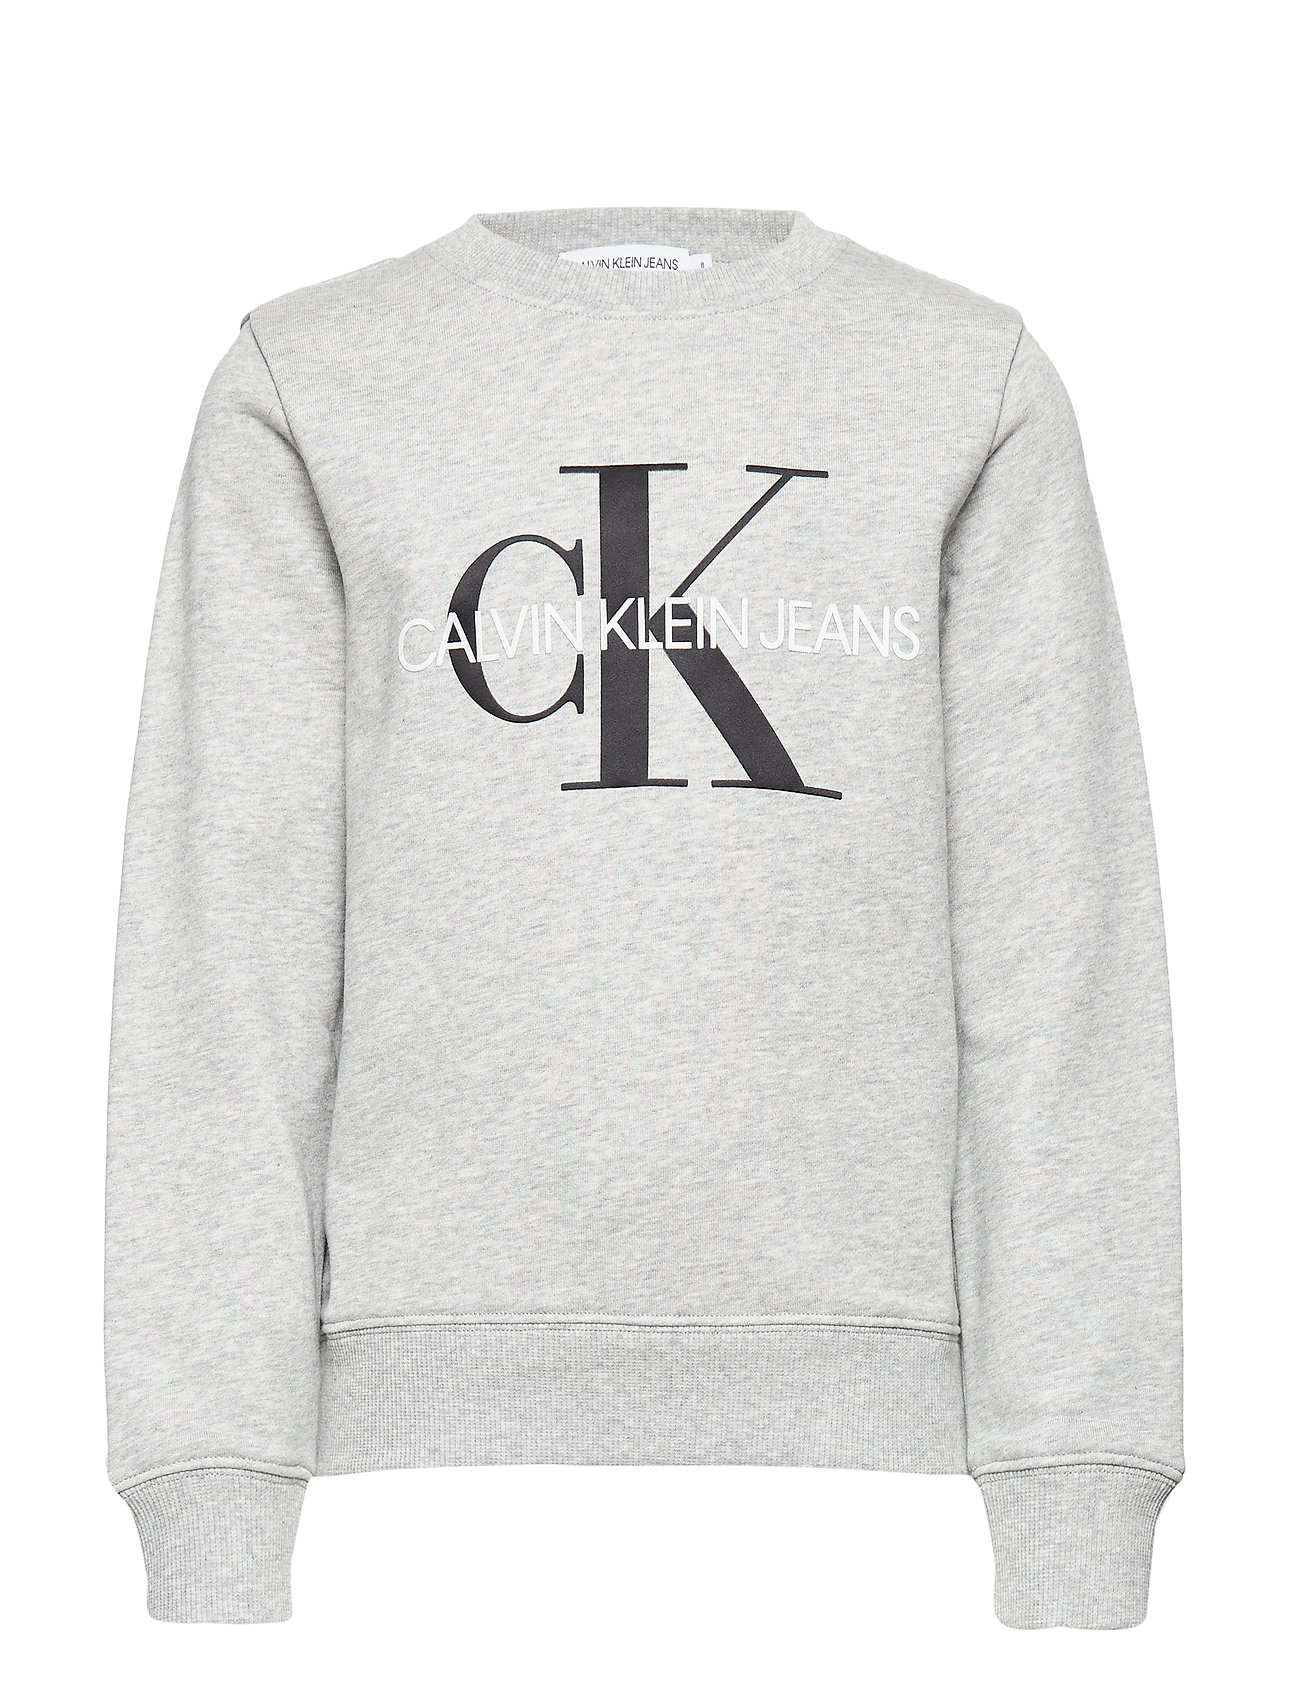 Calvin Klein MONOGRAM LOGO SWEATSHIRT - LIGHT GREY HEATHER